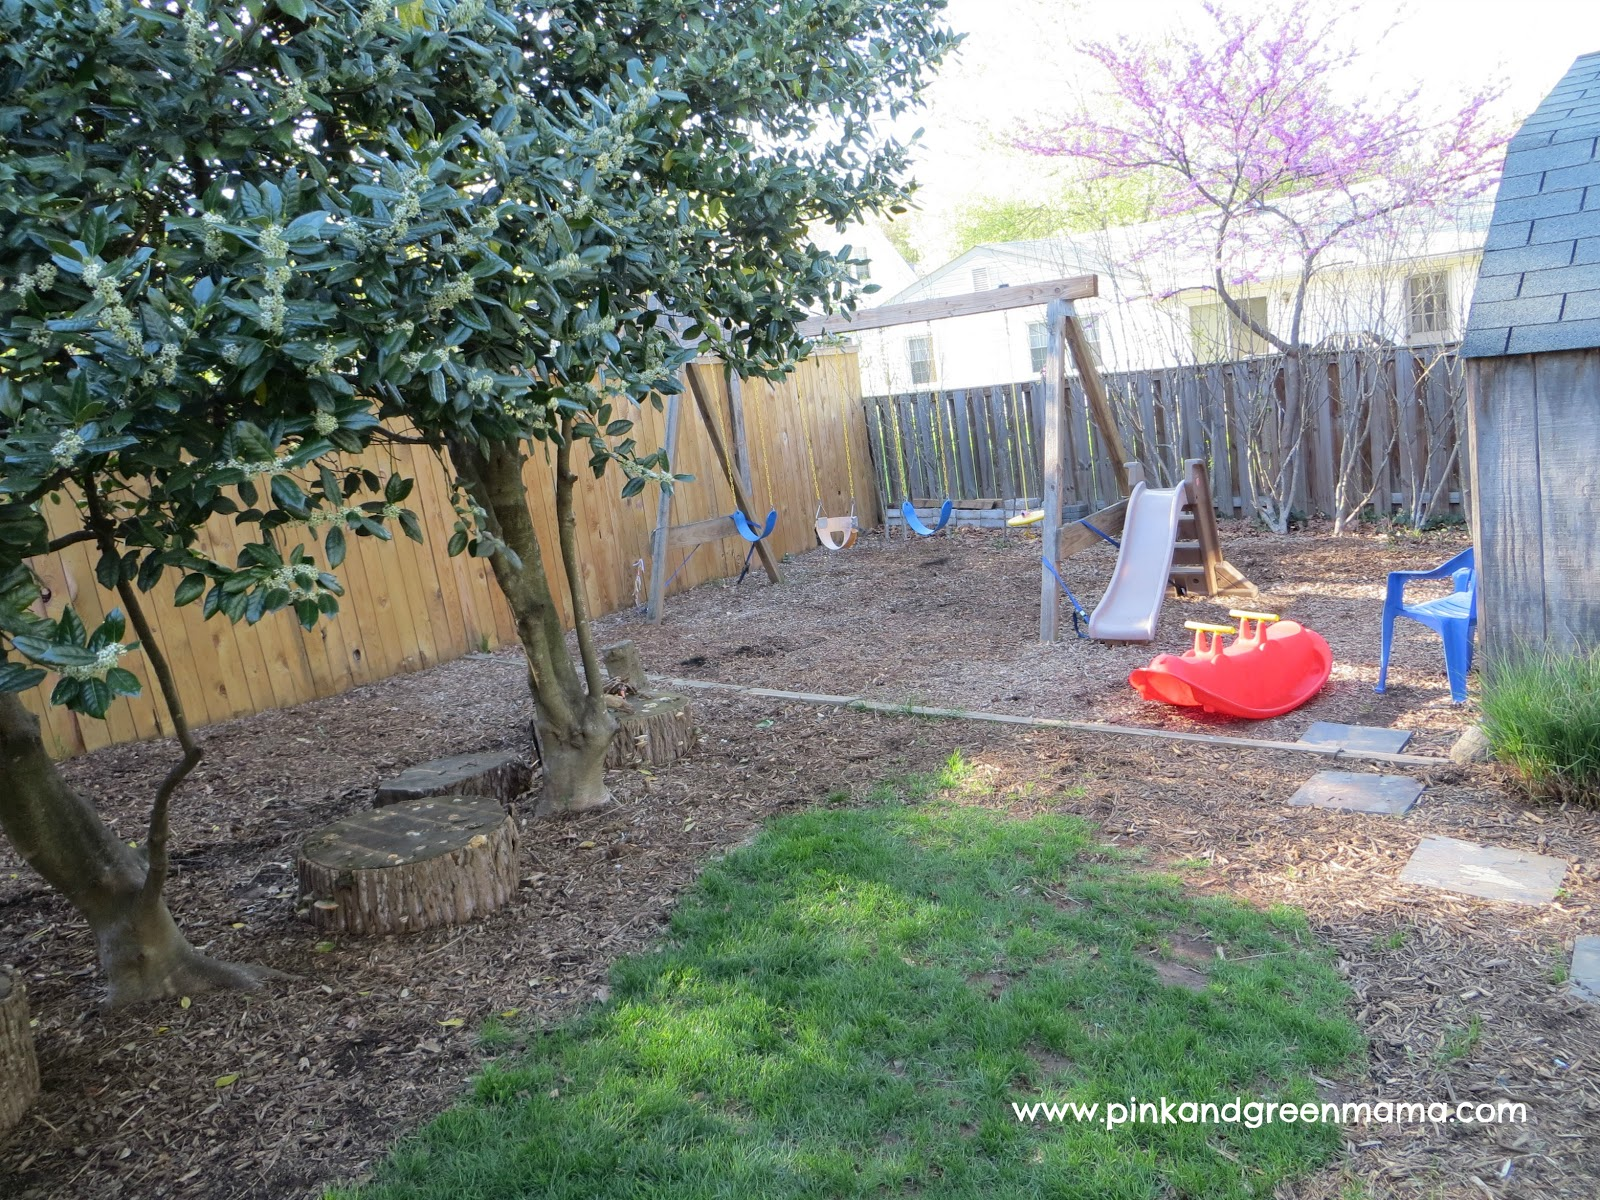 Backyard Playground Diy :  +Play+Area+DIY+Swing+Set+pinkandgreenmamablog Backyard Playground Diy